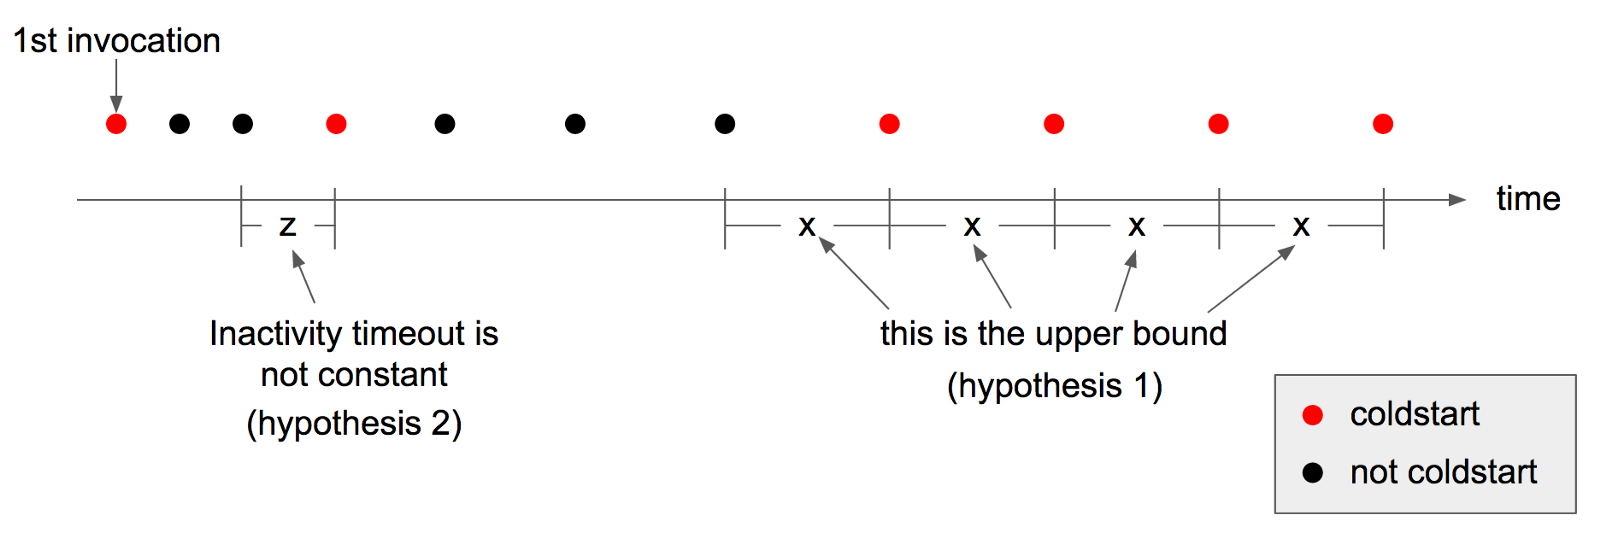 Hypothesis three, the upper bound for inactivity varies by memory allocation.